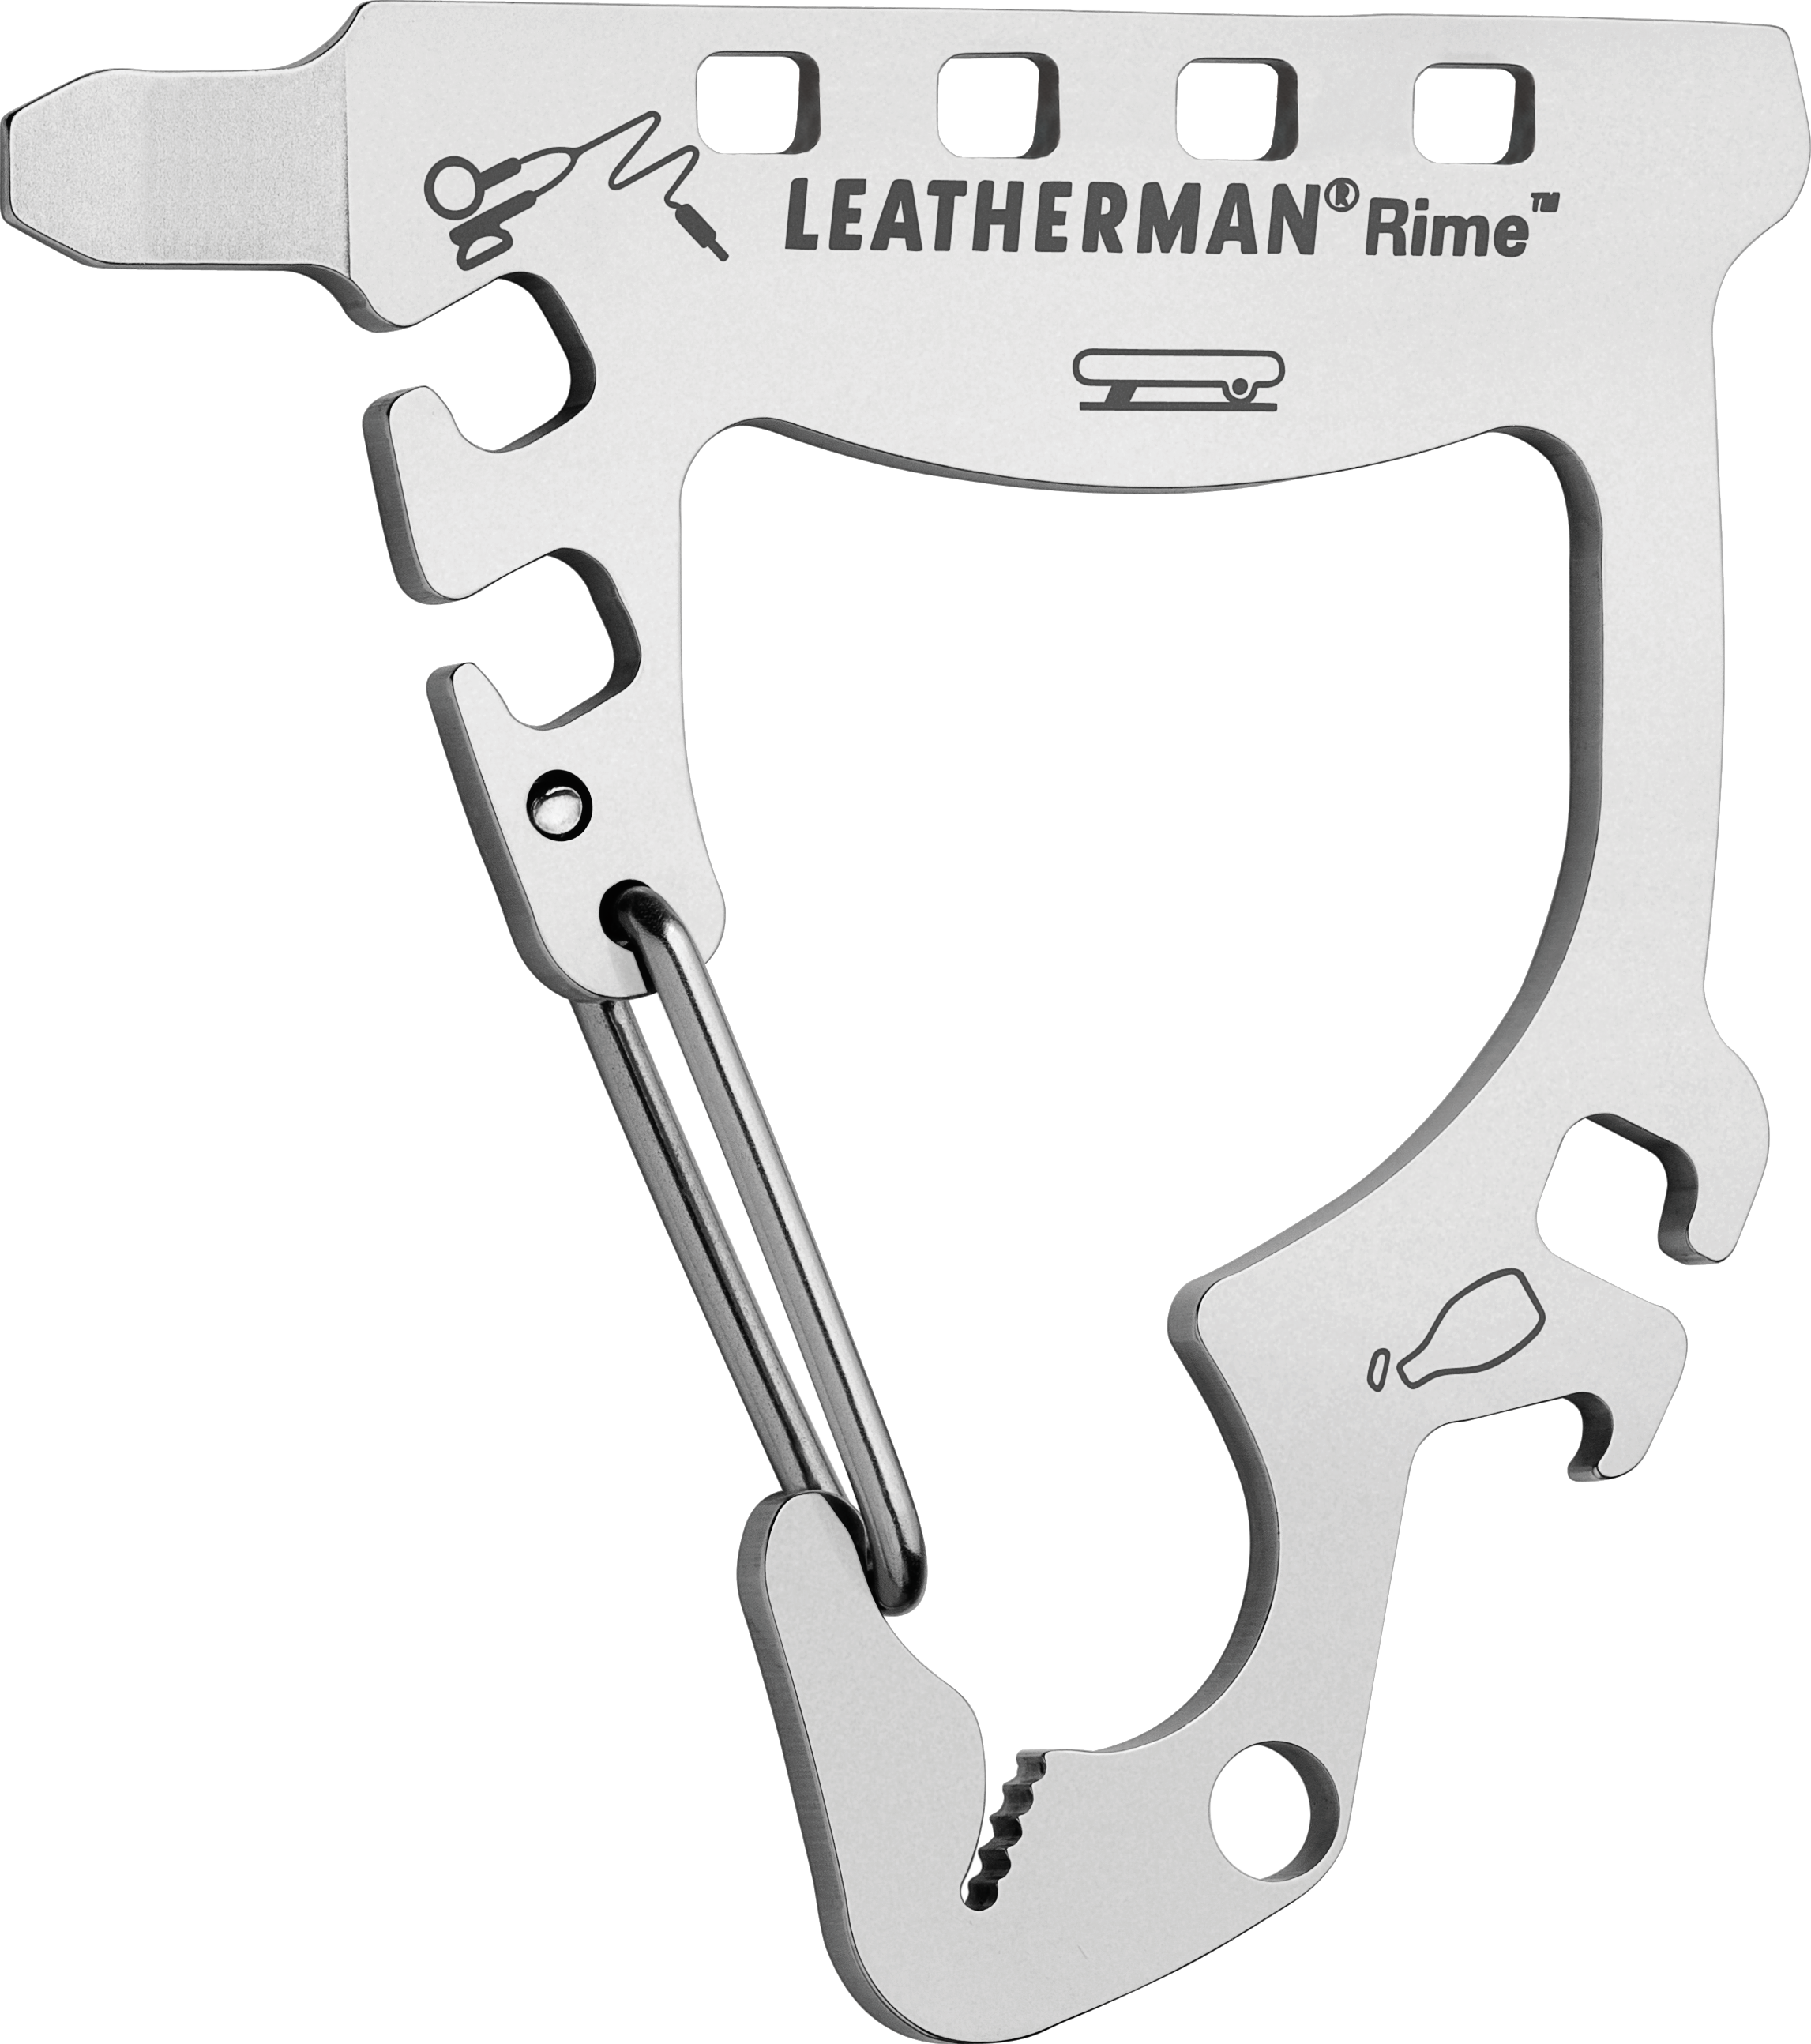 Leatherman Rime